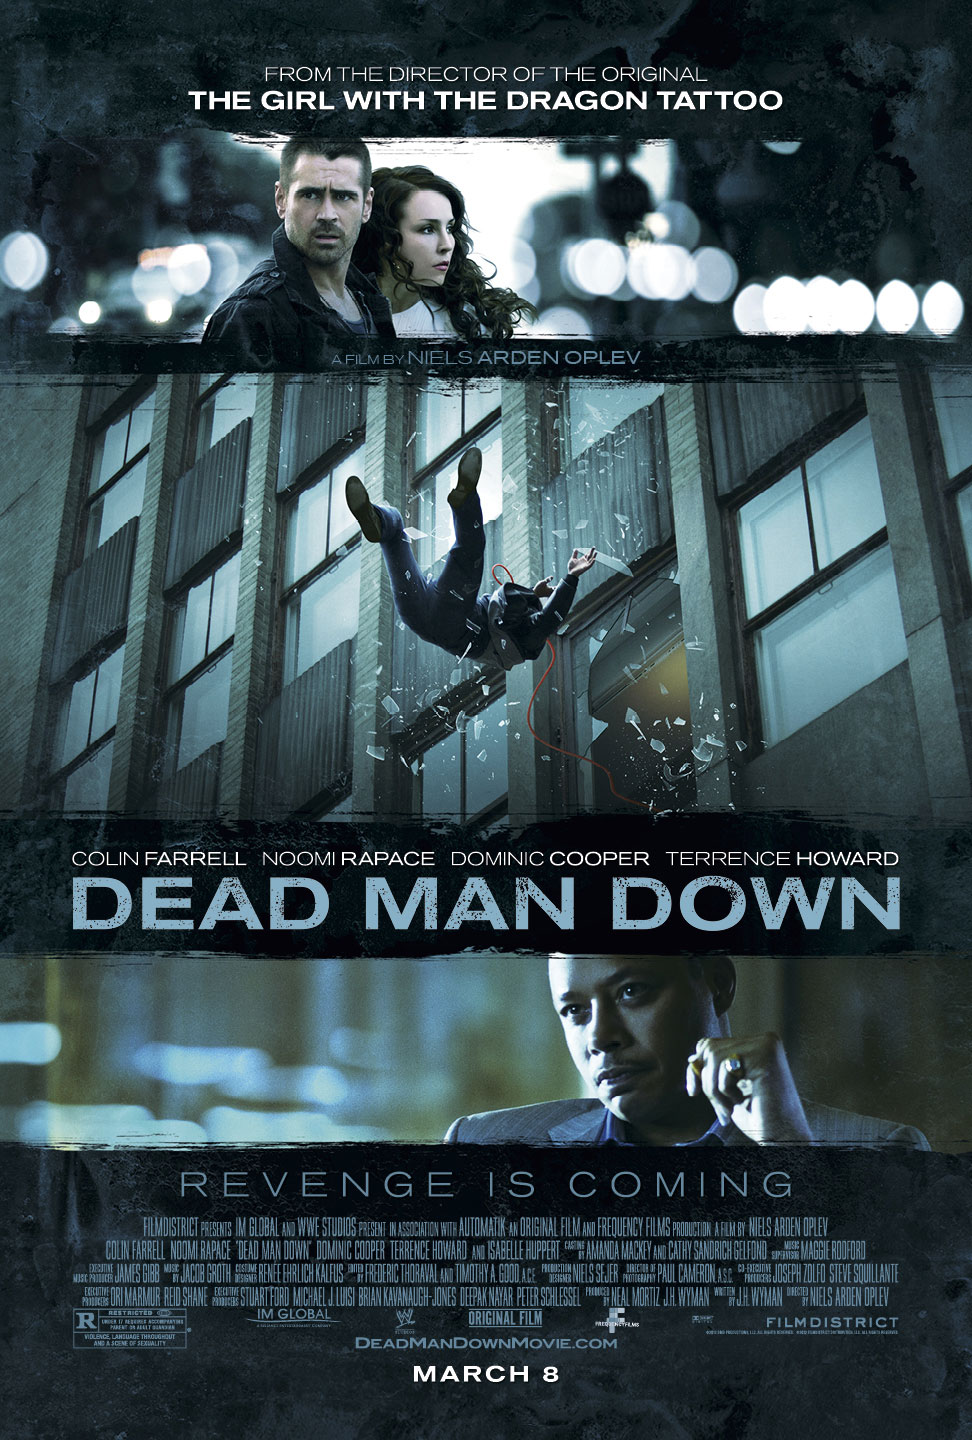 Dead Man Down Poster1 Enter The Dead Man Down Revenge Remix Diss Contest And Get Your Diss Heard